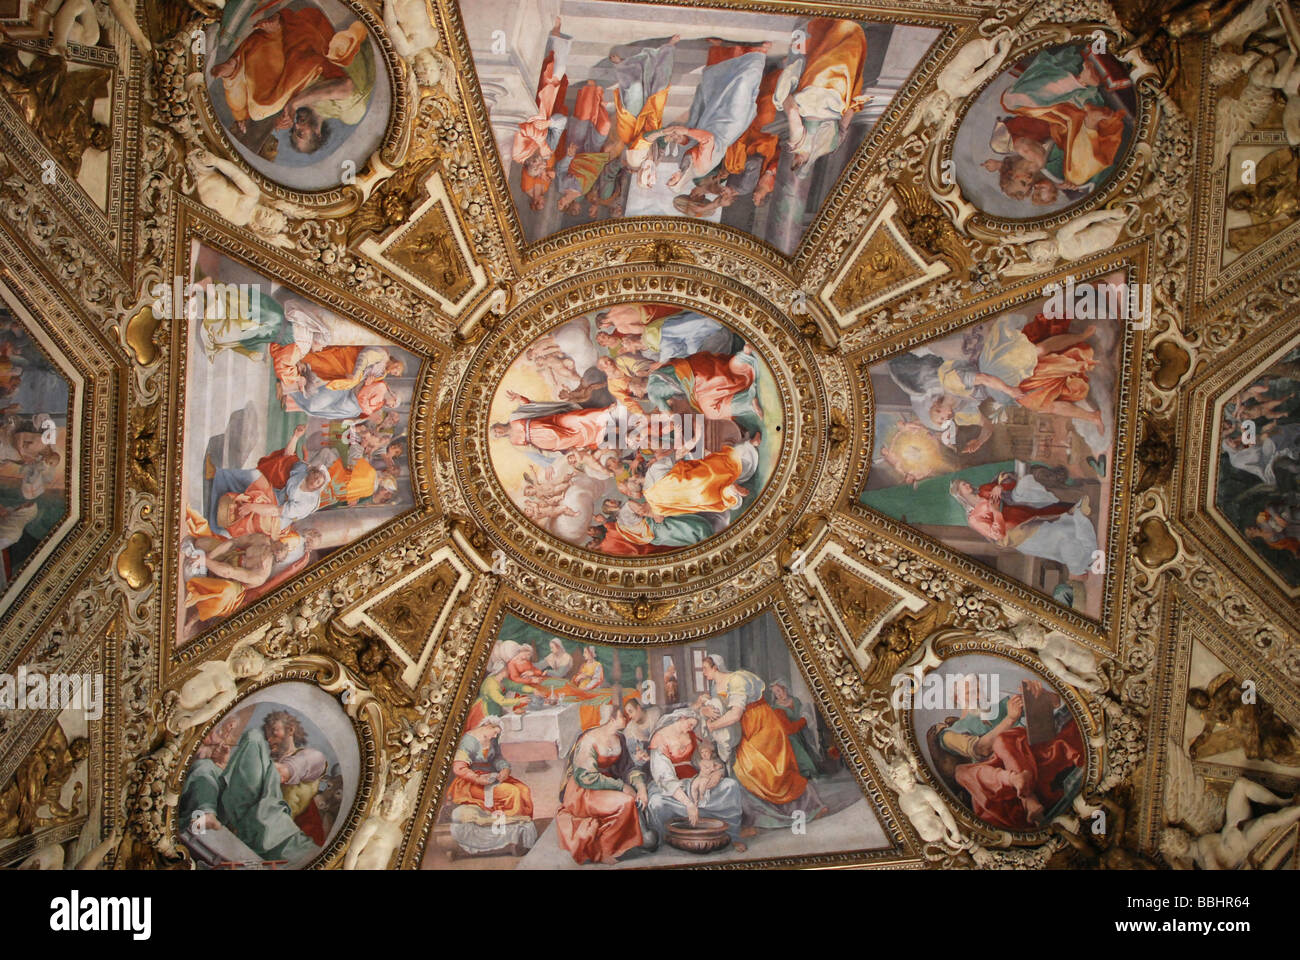 Ceiling Paintings Church Of Santa Maria In Trastevere